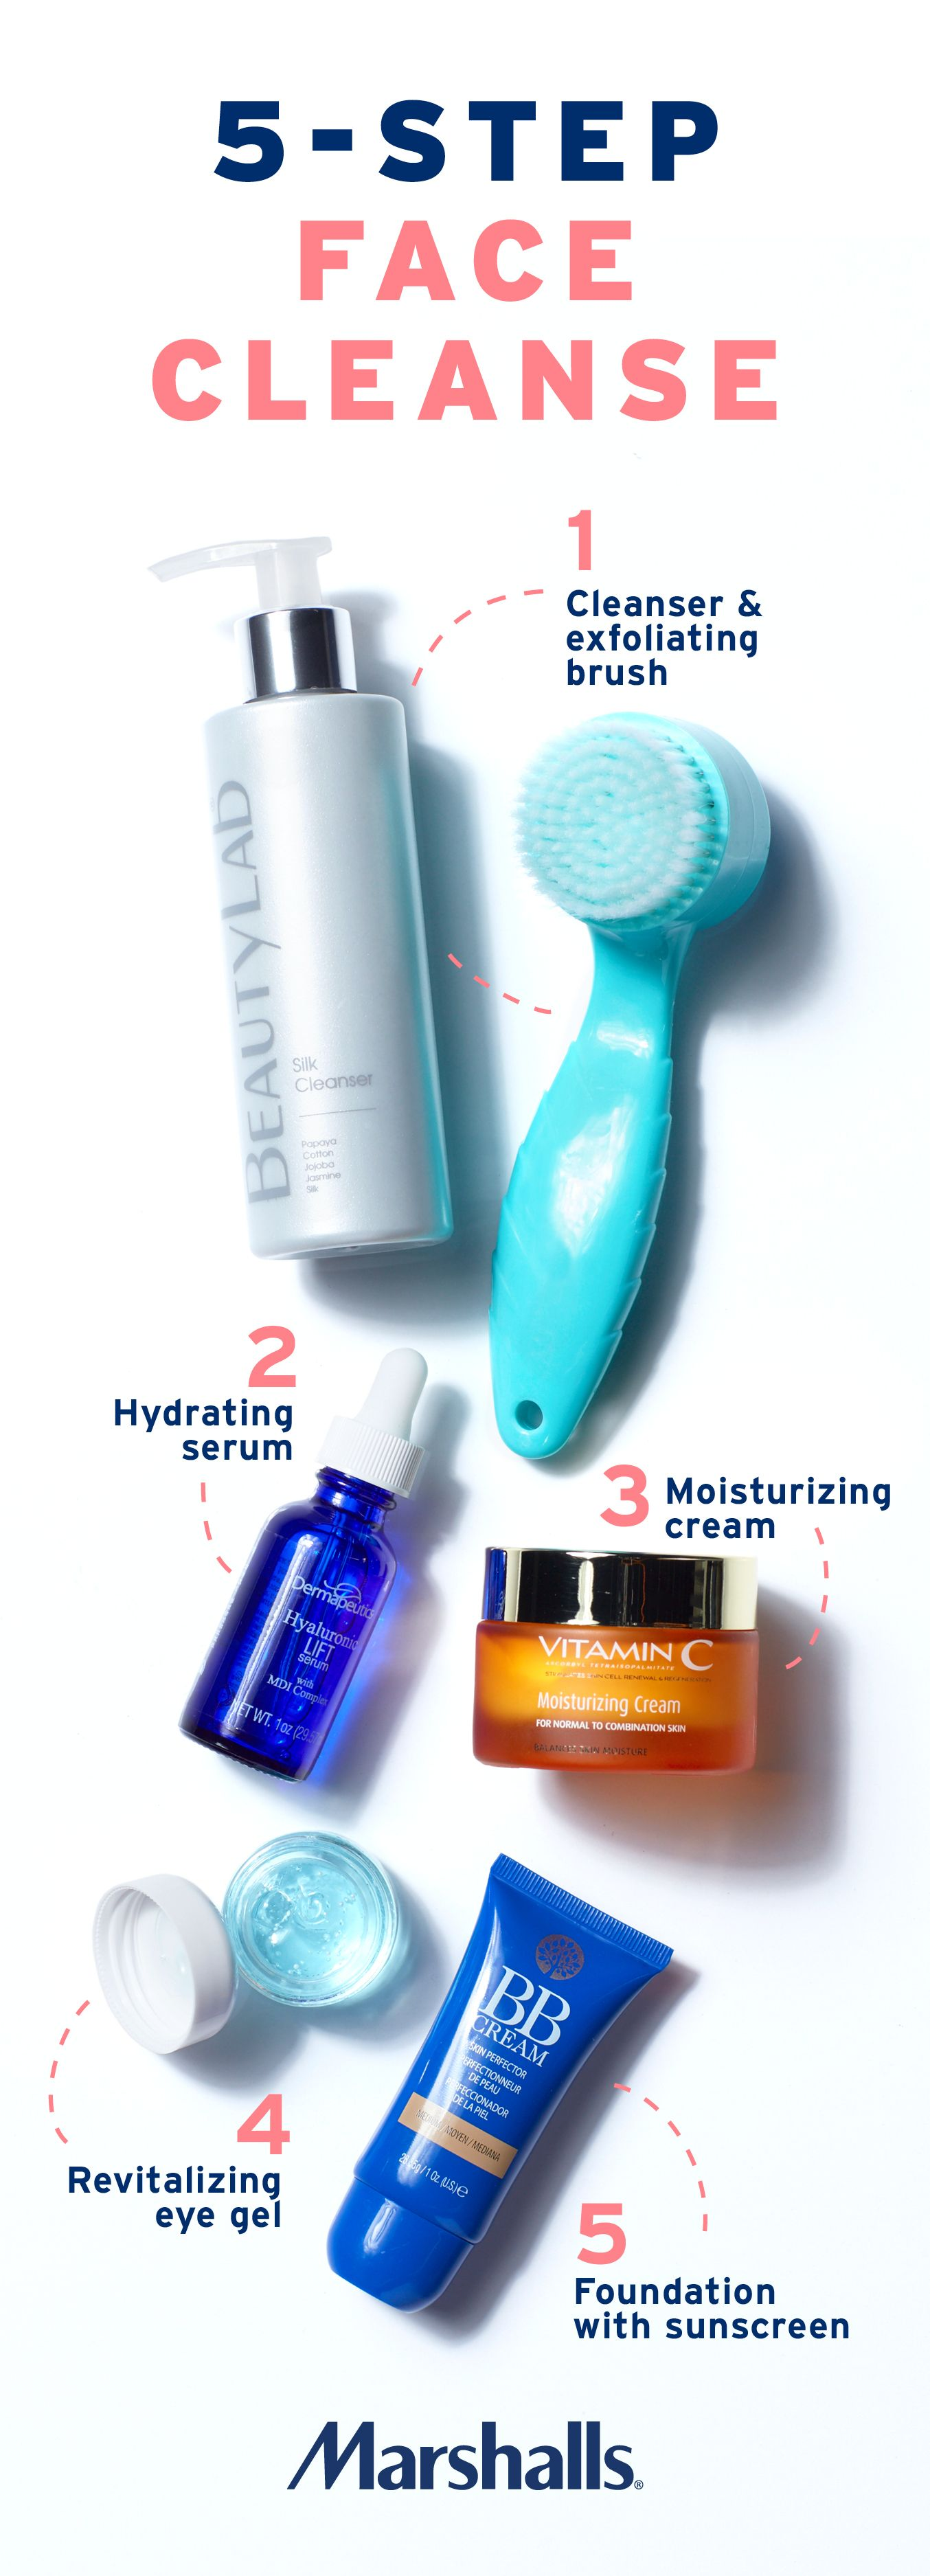 Refresh your beauty routine. Fresh faced in 5 simple steps